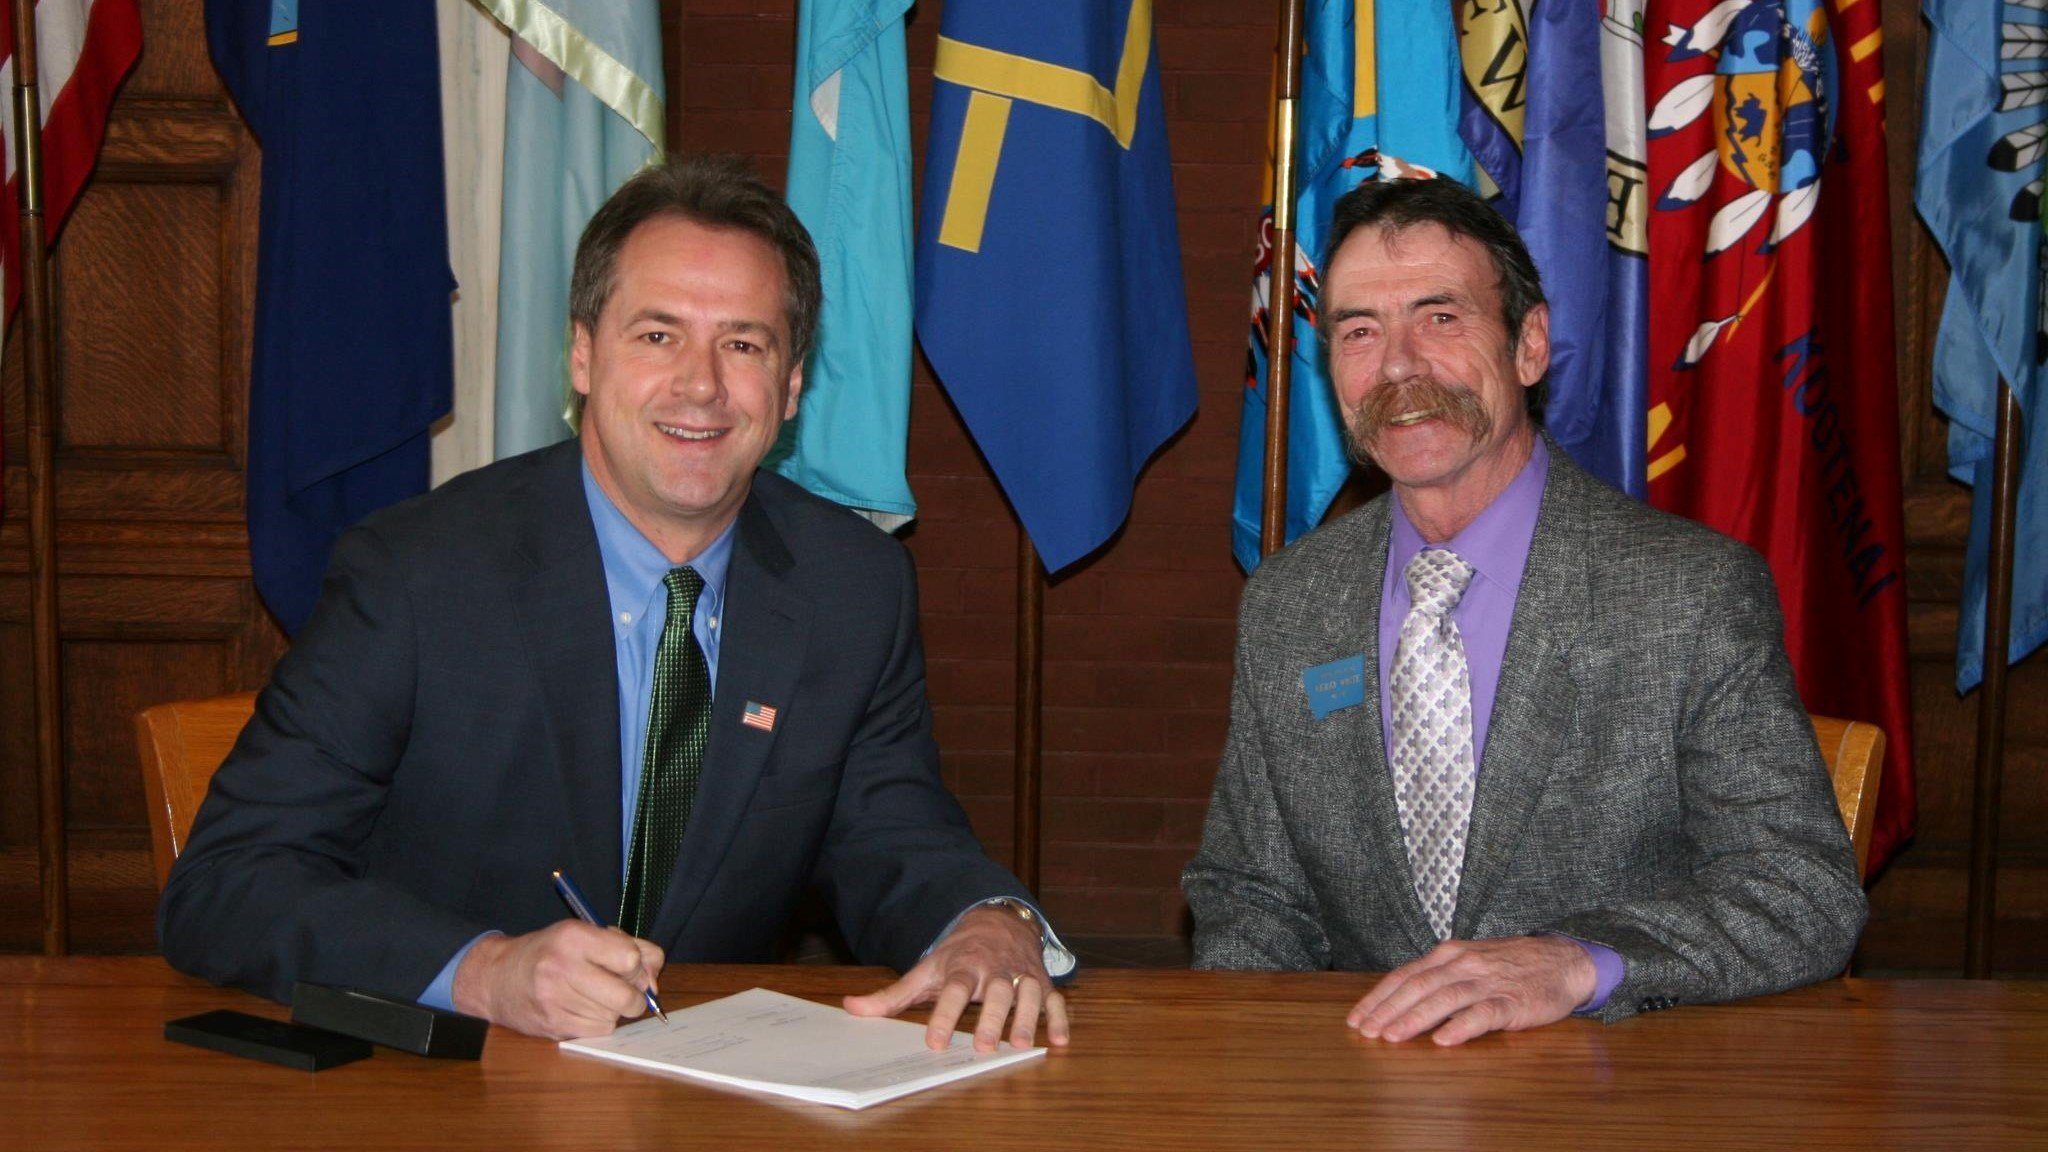 Kerry White (right), Bozeman's state representative, with Montana Governor Steve Bullock. Photo Credit: Facebook / Kerry White